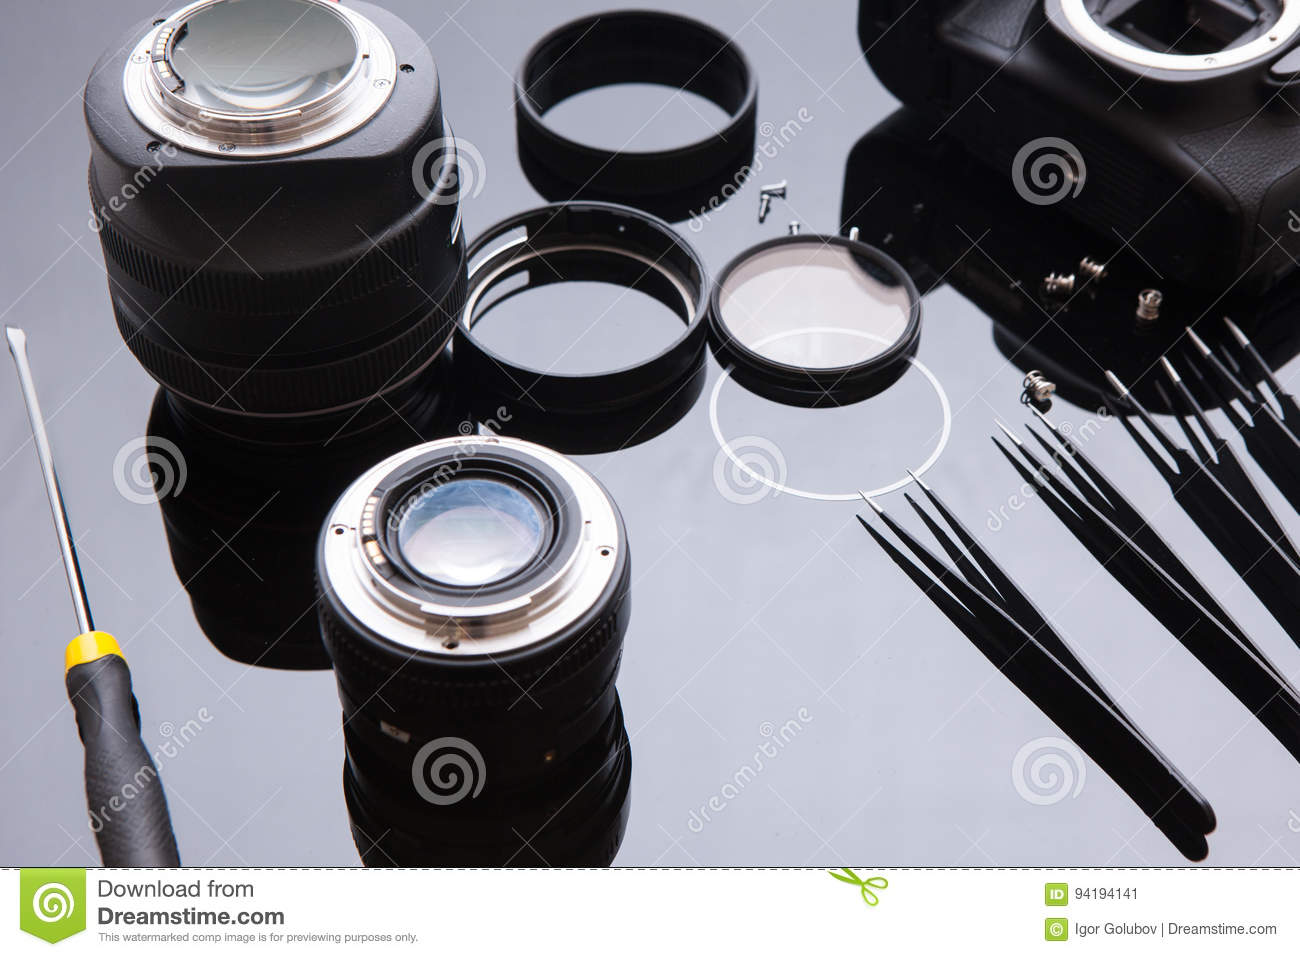 Precision Optic Photo Lens Service, Adjust, Align Stock Image